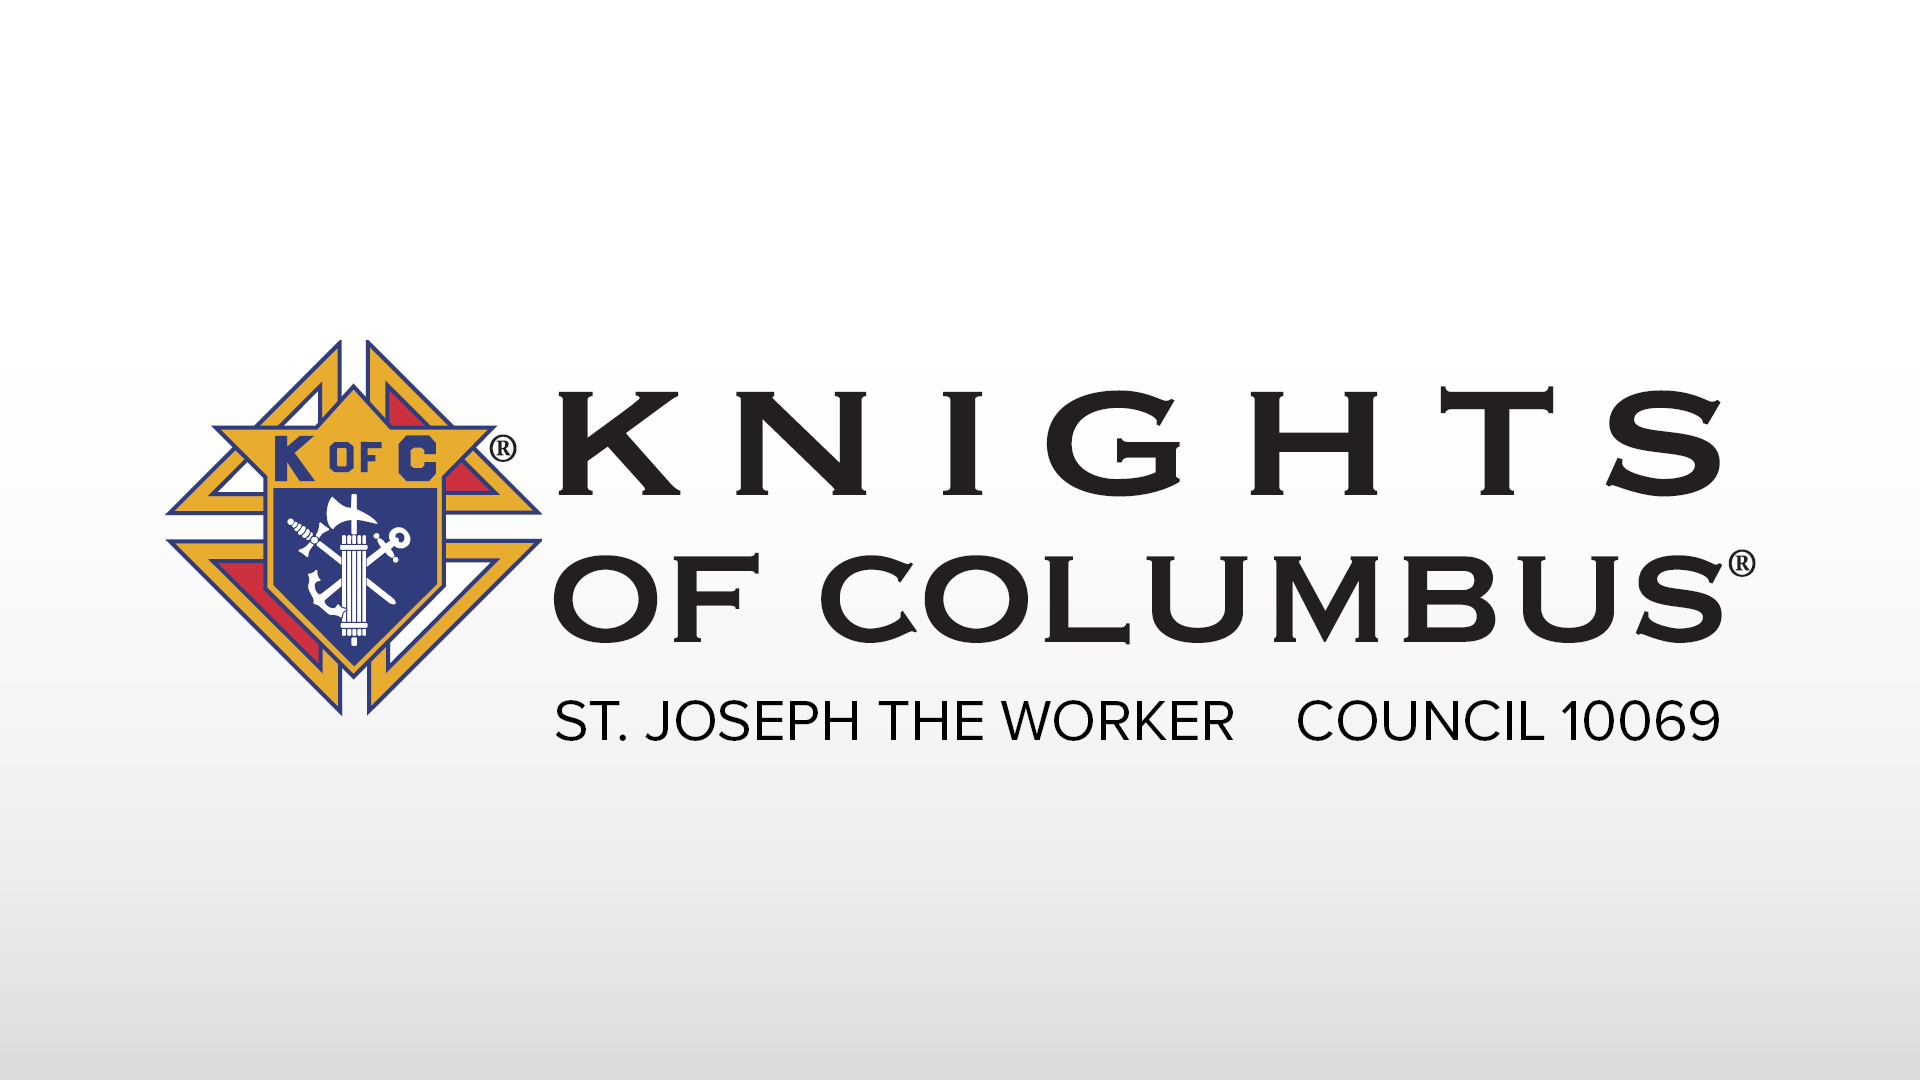 Knights Of Columbus Meeting St Joseph The Worker